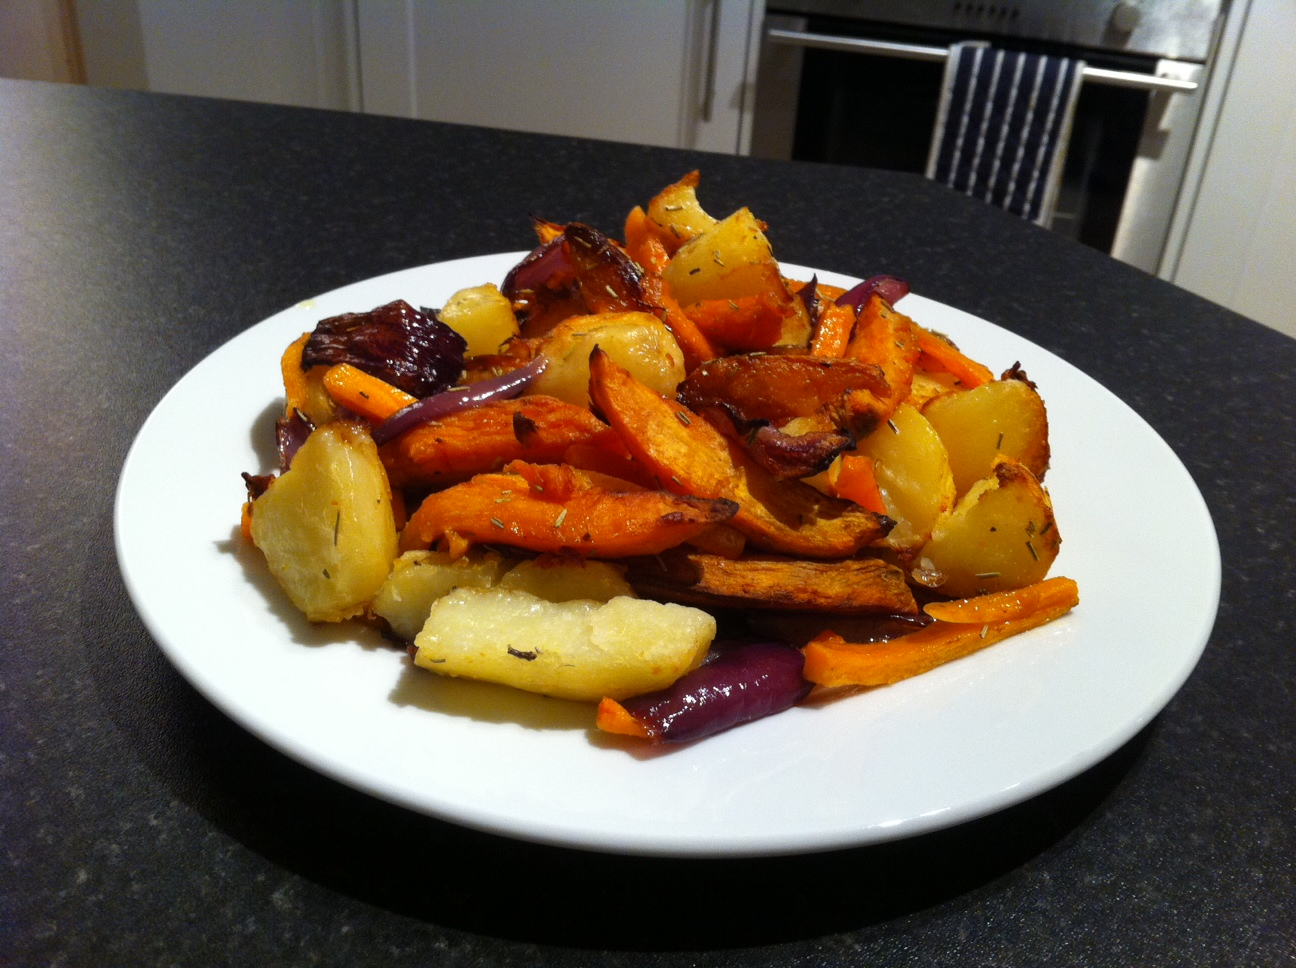 roasted vegetables view 2